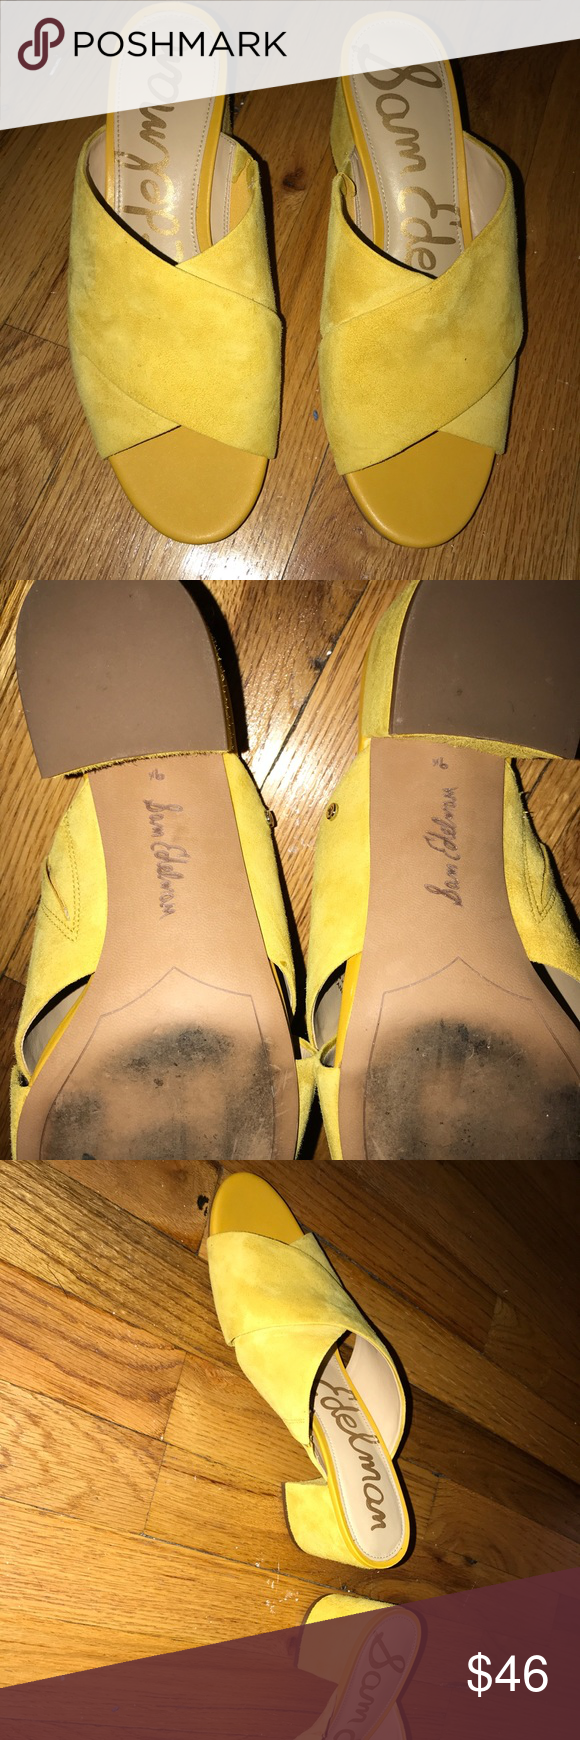 4061b07a725a93 Sam Edelman Stanley Block Heel Mule Sandal Worn one time. Sunset yellow  suede. Size 9.5. In great shape. Sam Edelman Shoes Mules   Clogs